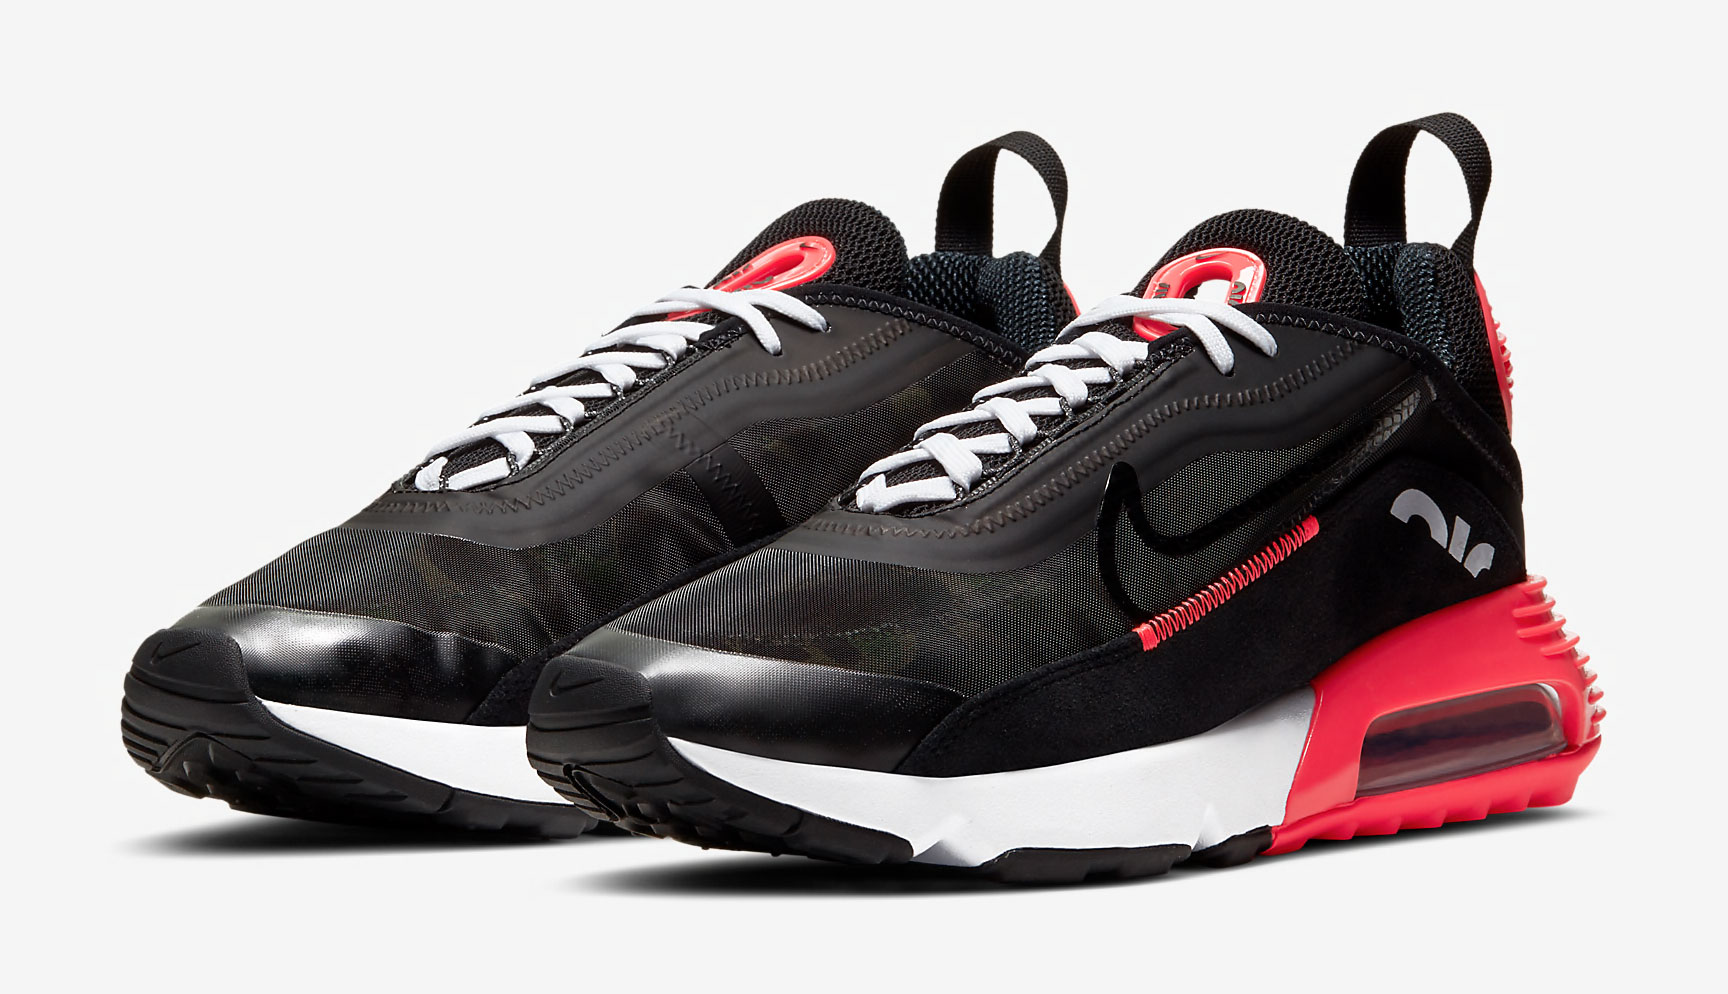 nike-air-max-2090-infrared-duck-camo-release-date-1